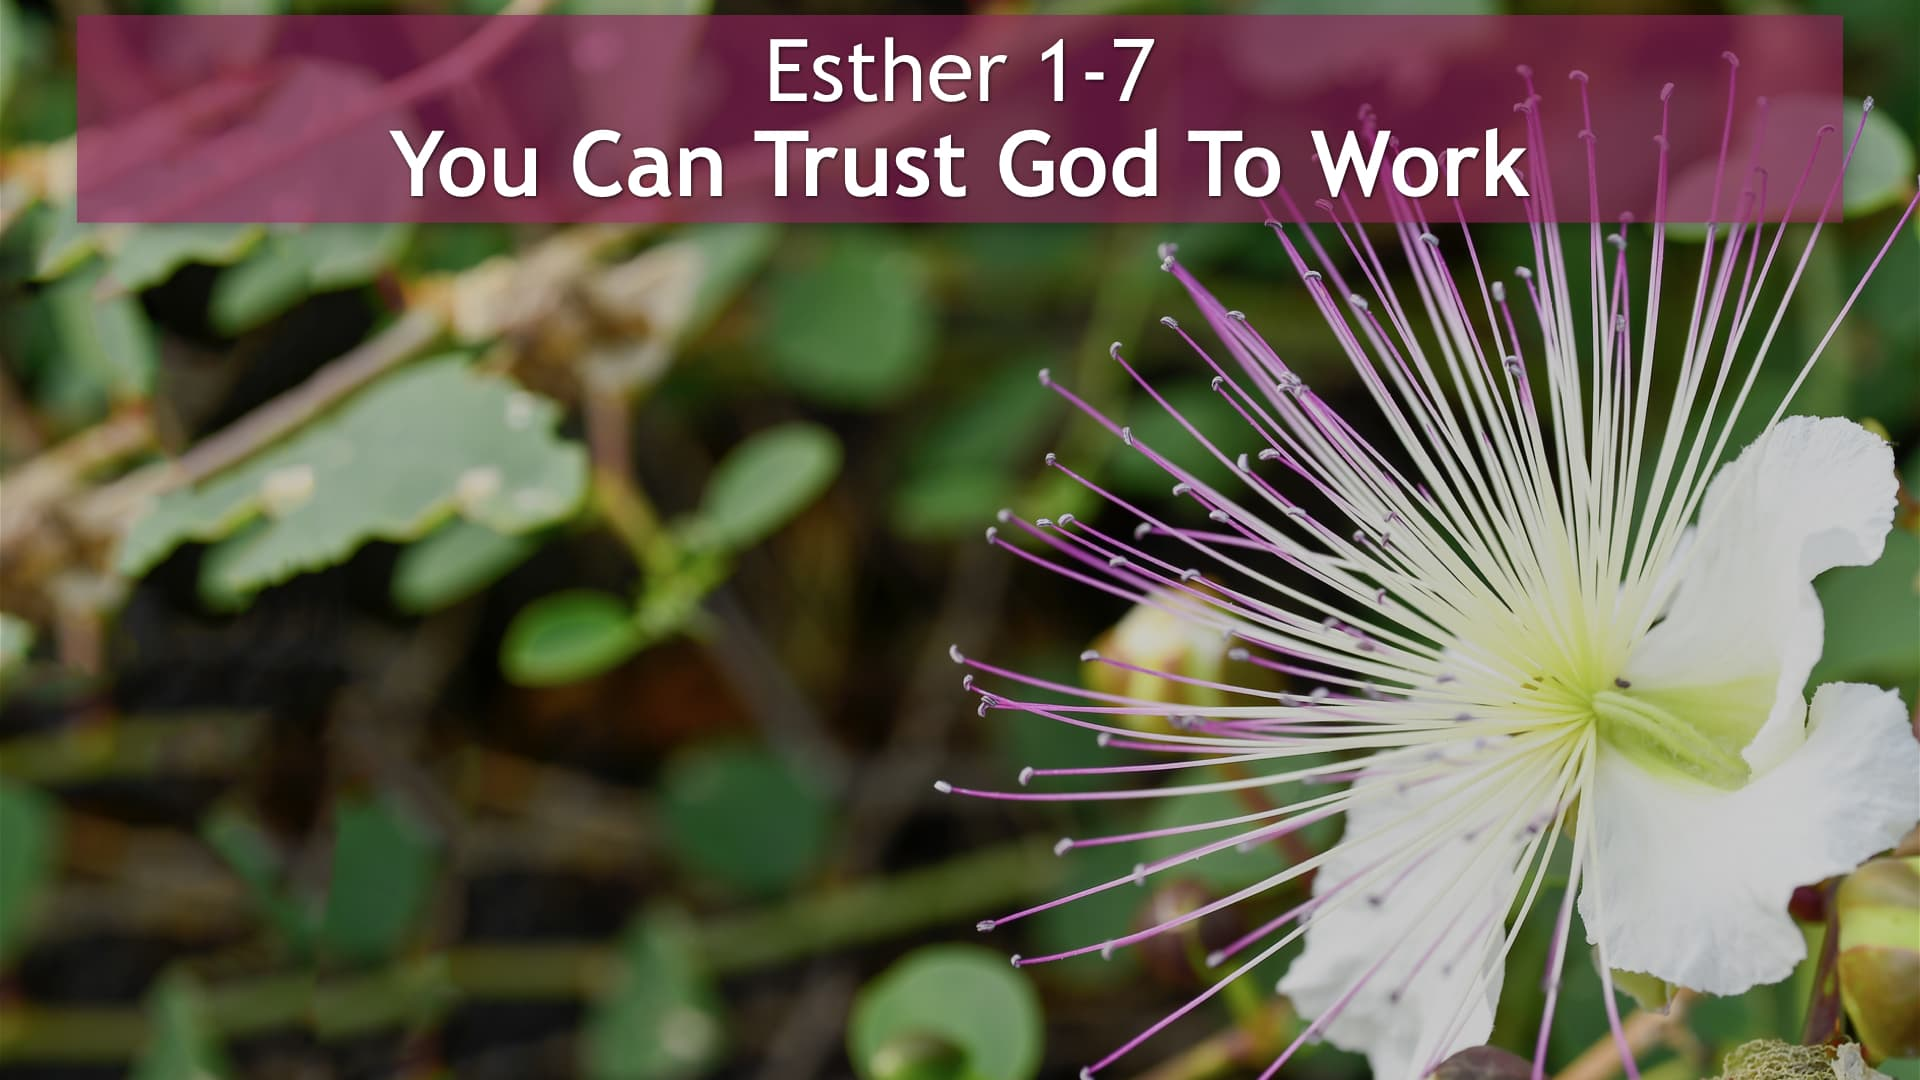 Esther 1-7, You Can Trust God To Work